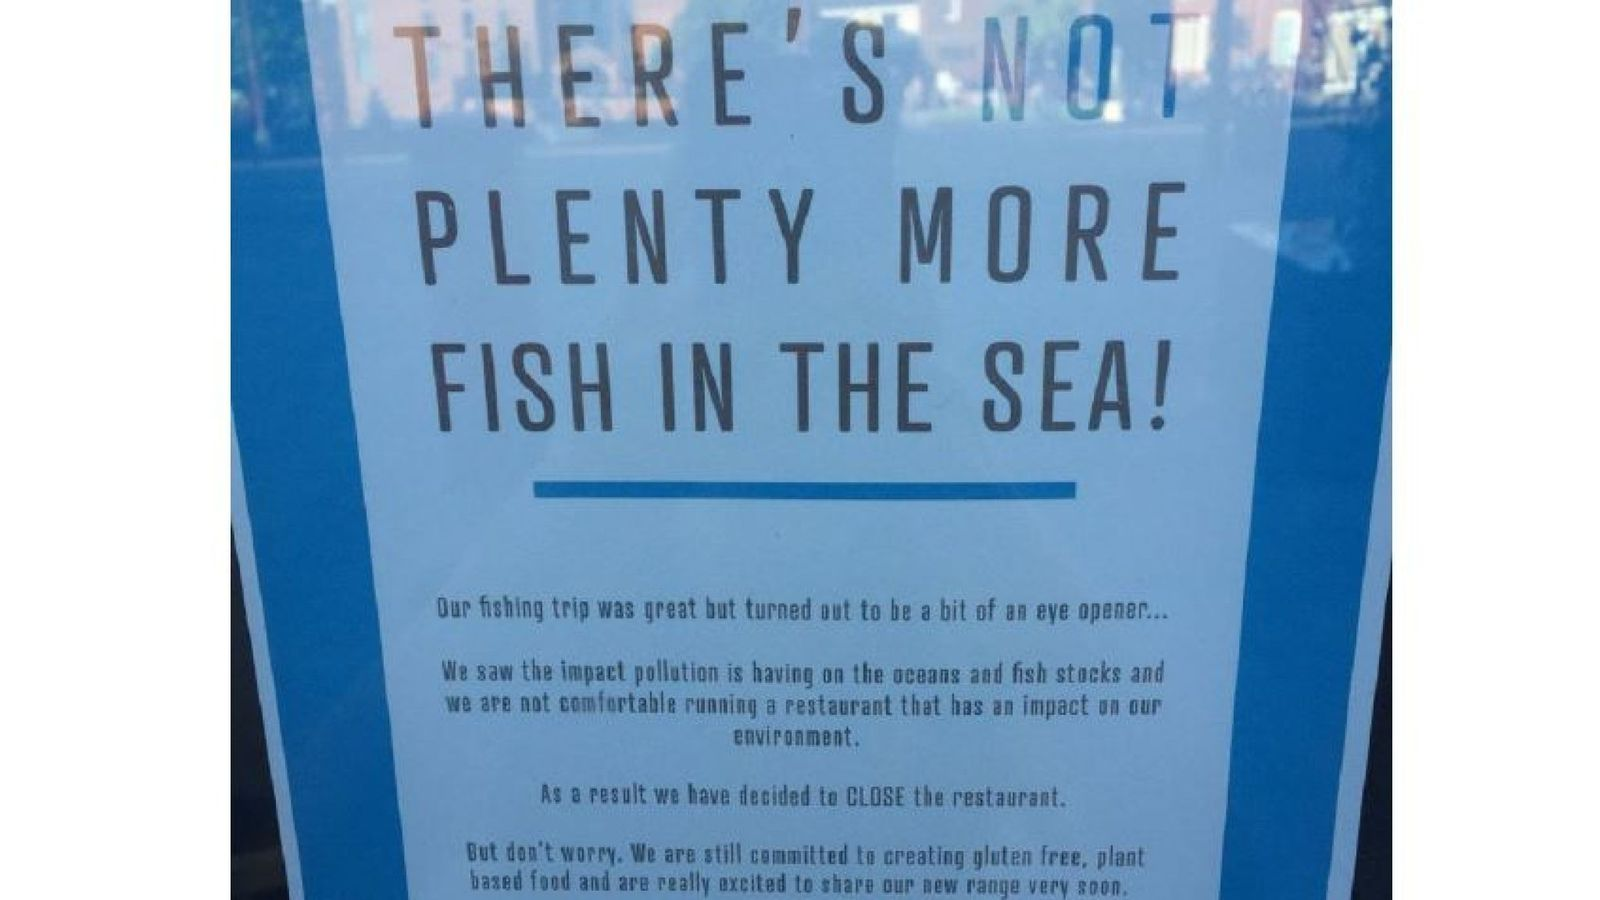 Fish and chip restaurant closes when owners witness depleted sea